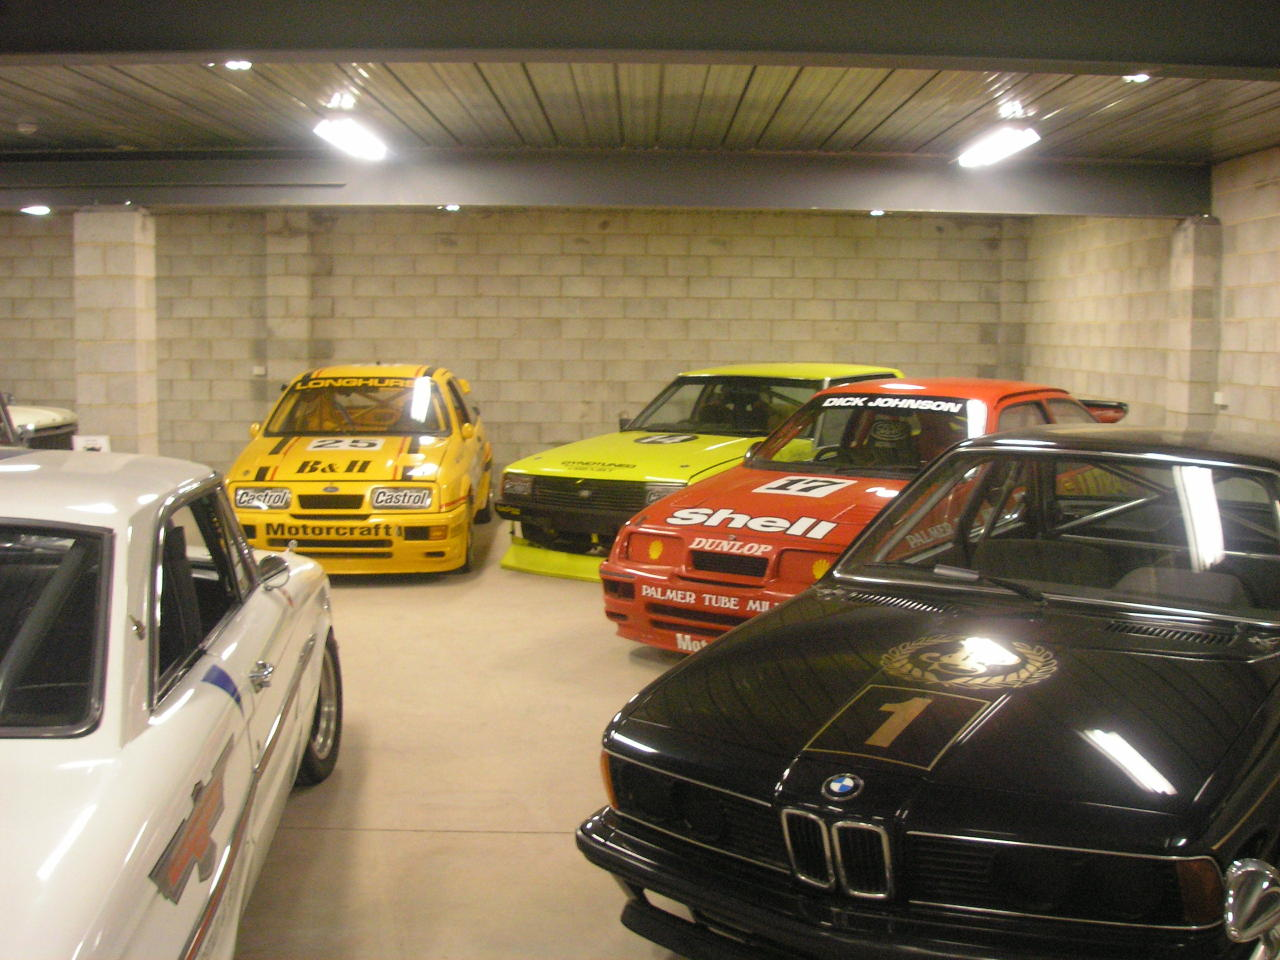 Mp4-12cxx: BOWDENS. Inc dick Johnsons Ford Sierra cosworth What a collection this place has. Absolutely loving the Sierra Cosworths and that JSP E24. Thanks for submitting! Cosworths from the past